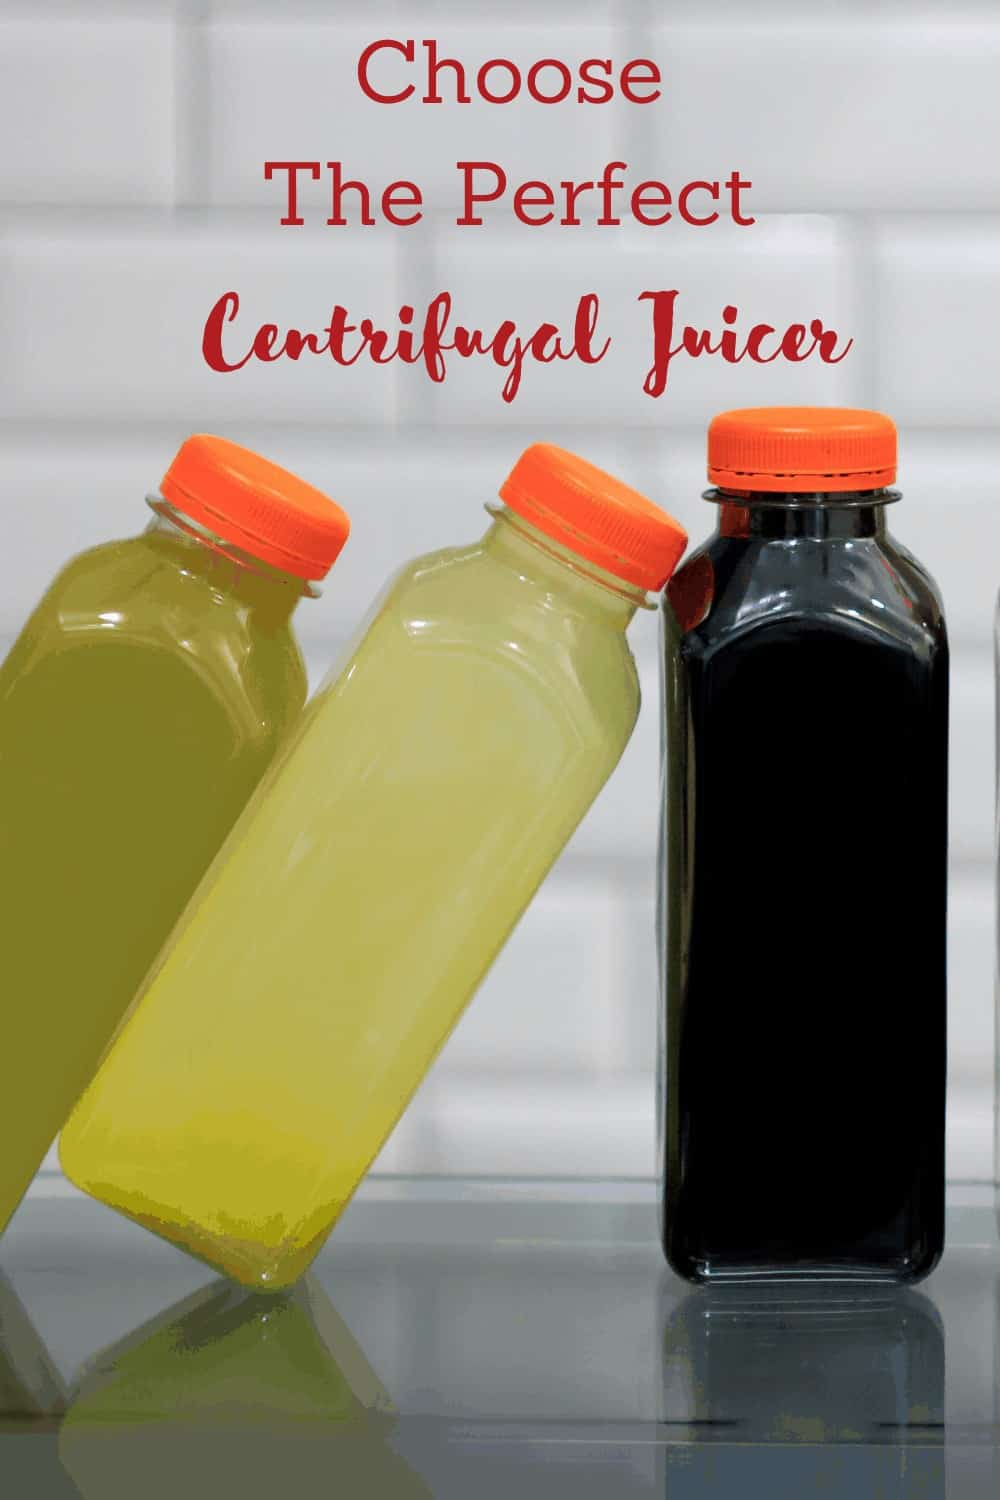 How To Choose The Perfect Centrifugal Juicer To Help Create A Healthier You!